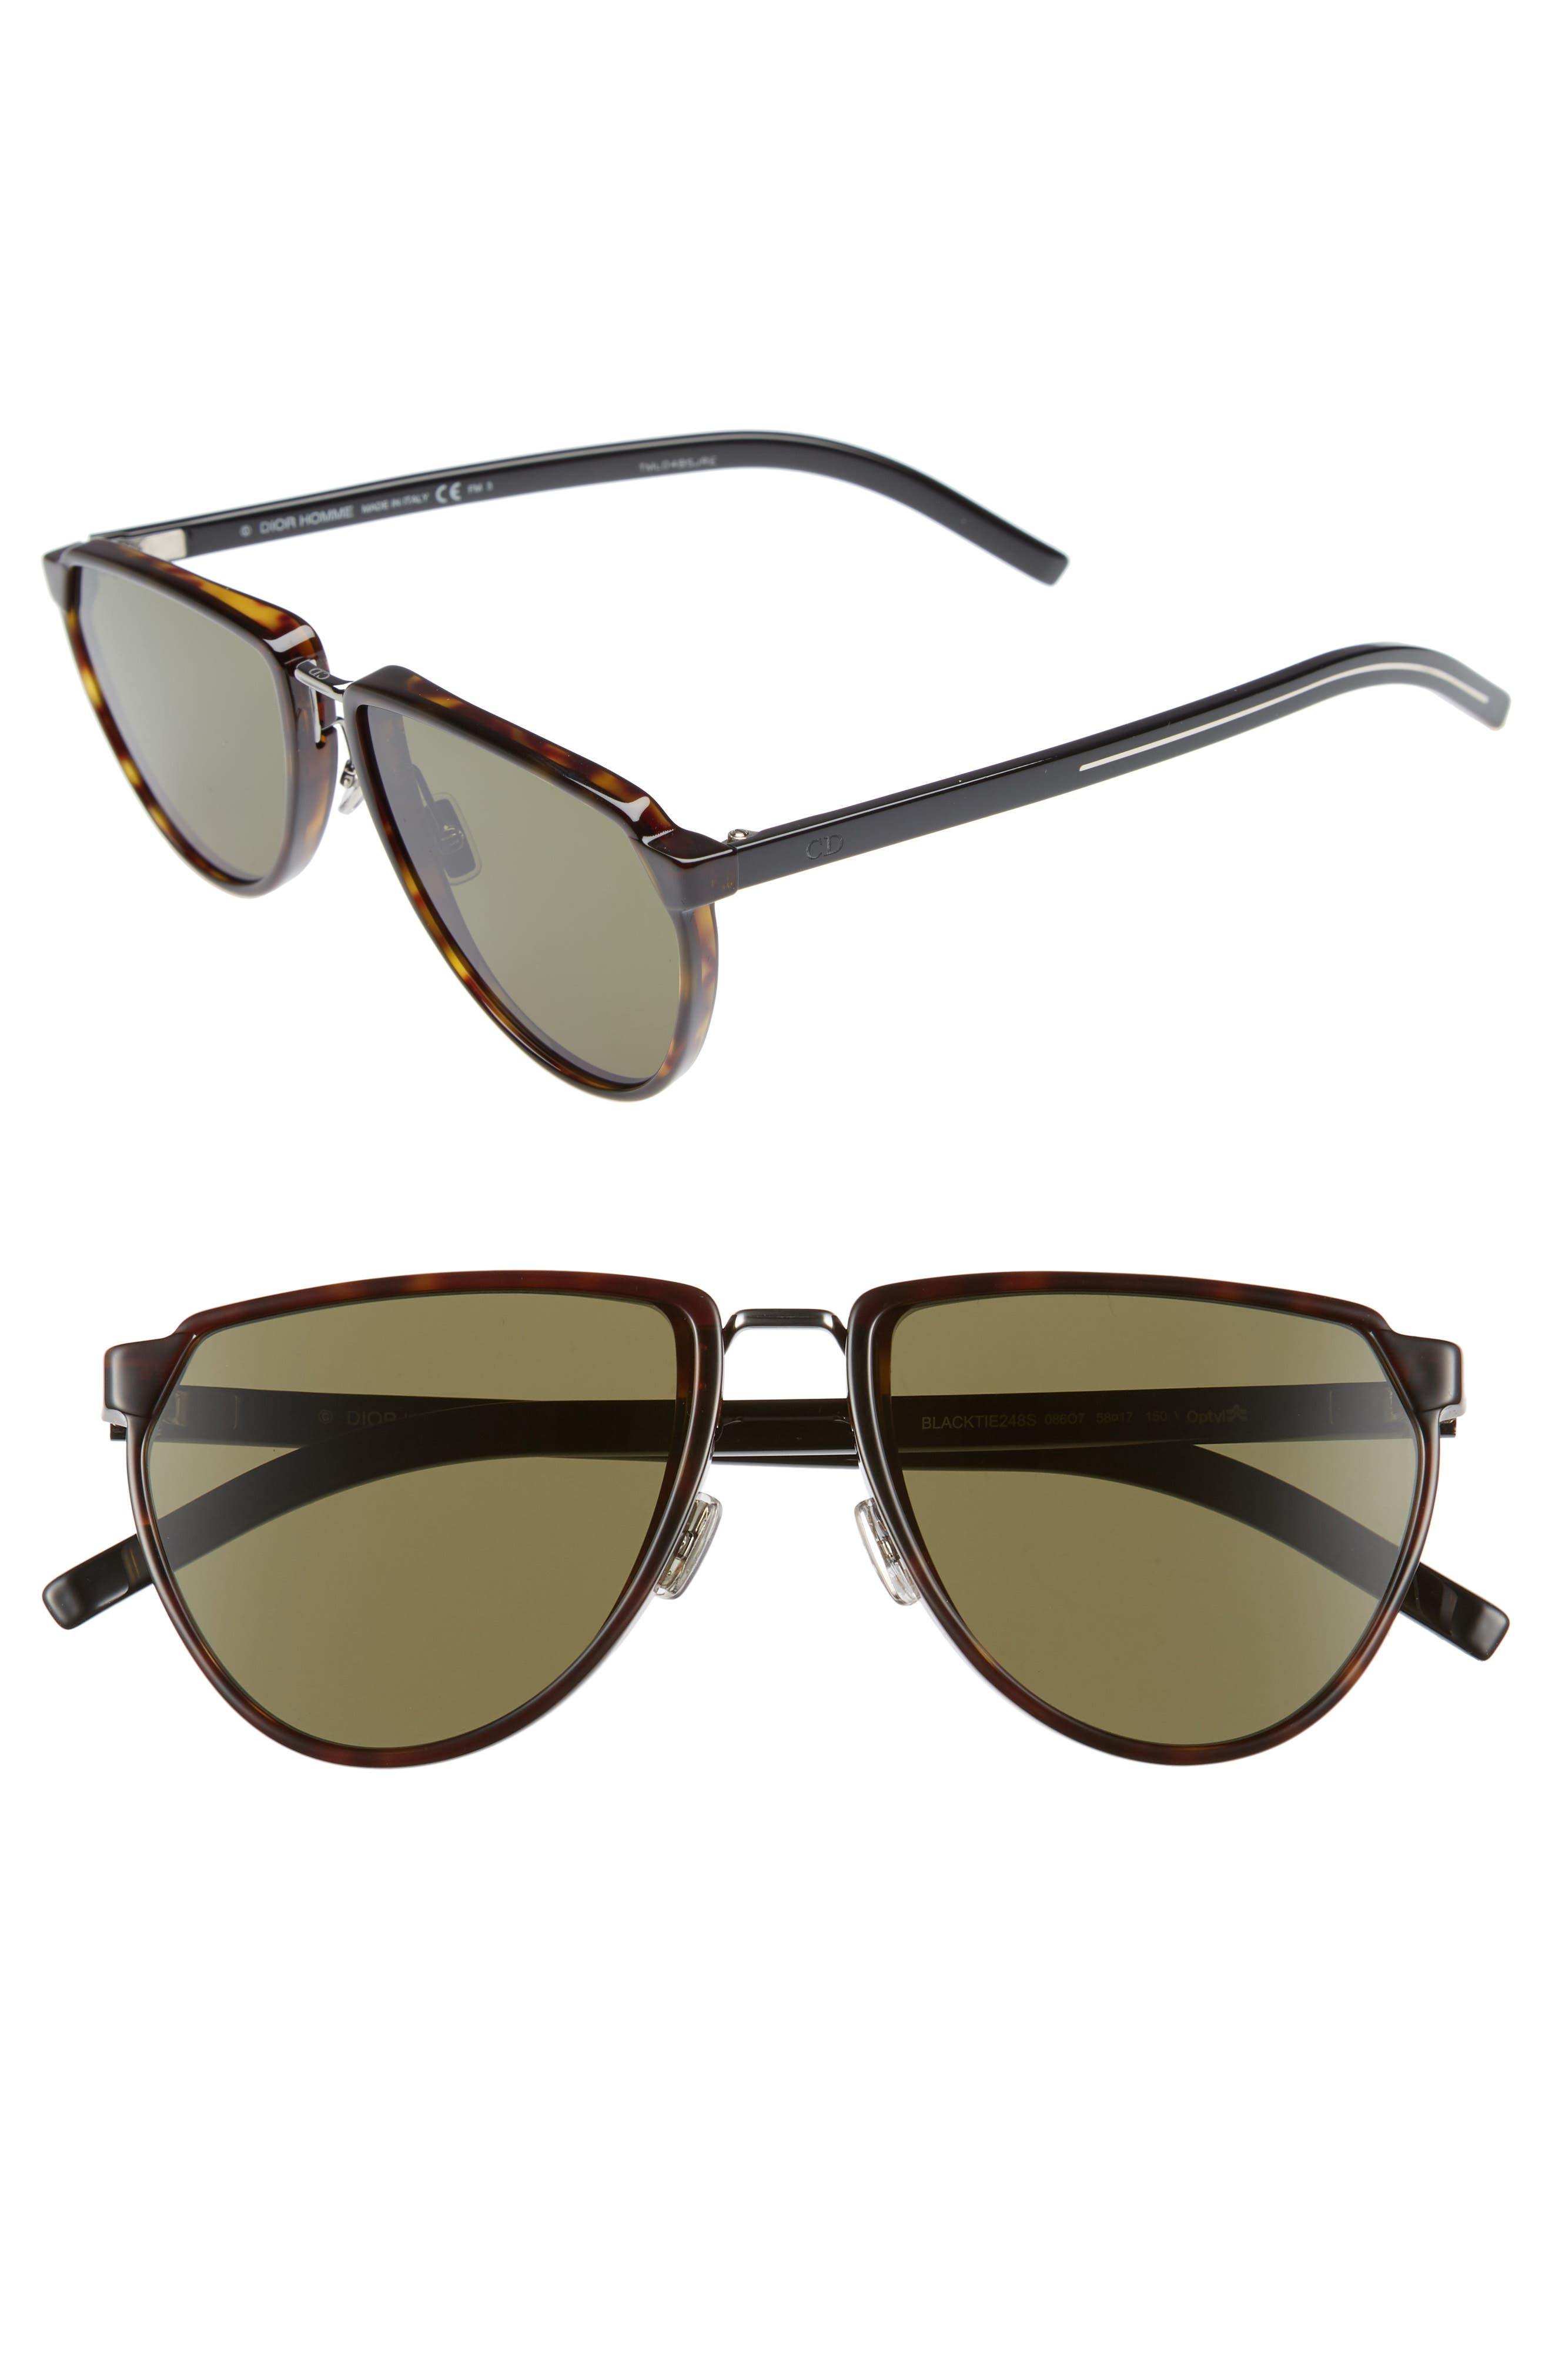 Main Image - Dior Homme 58mm Sunglasses